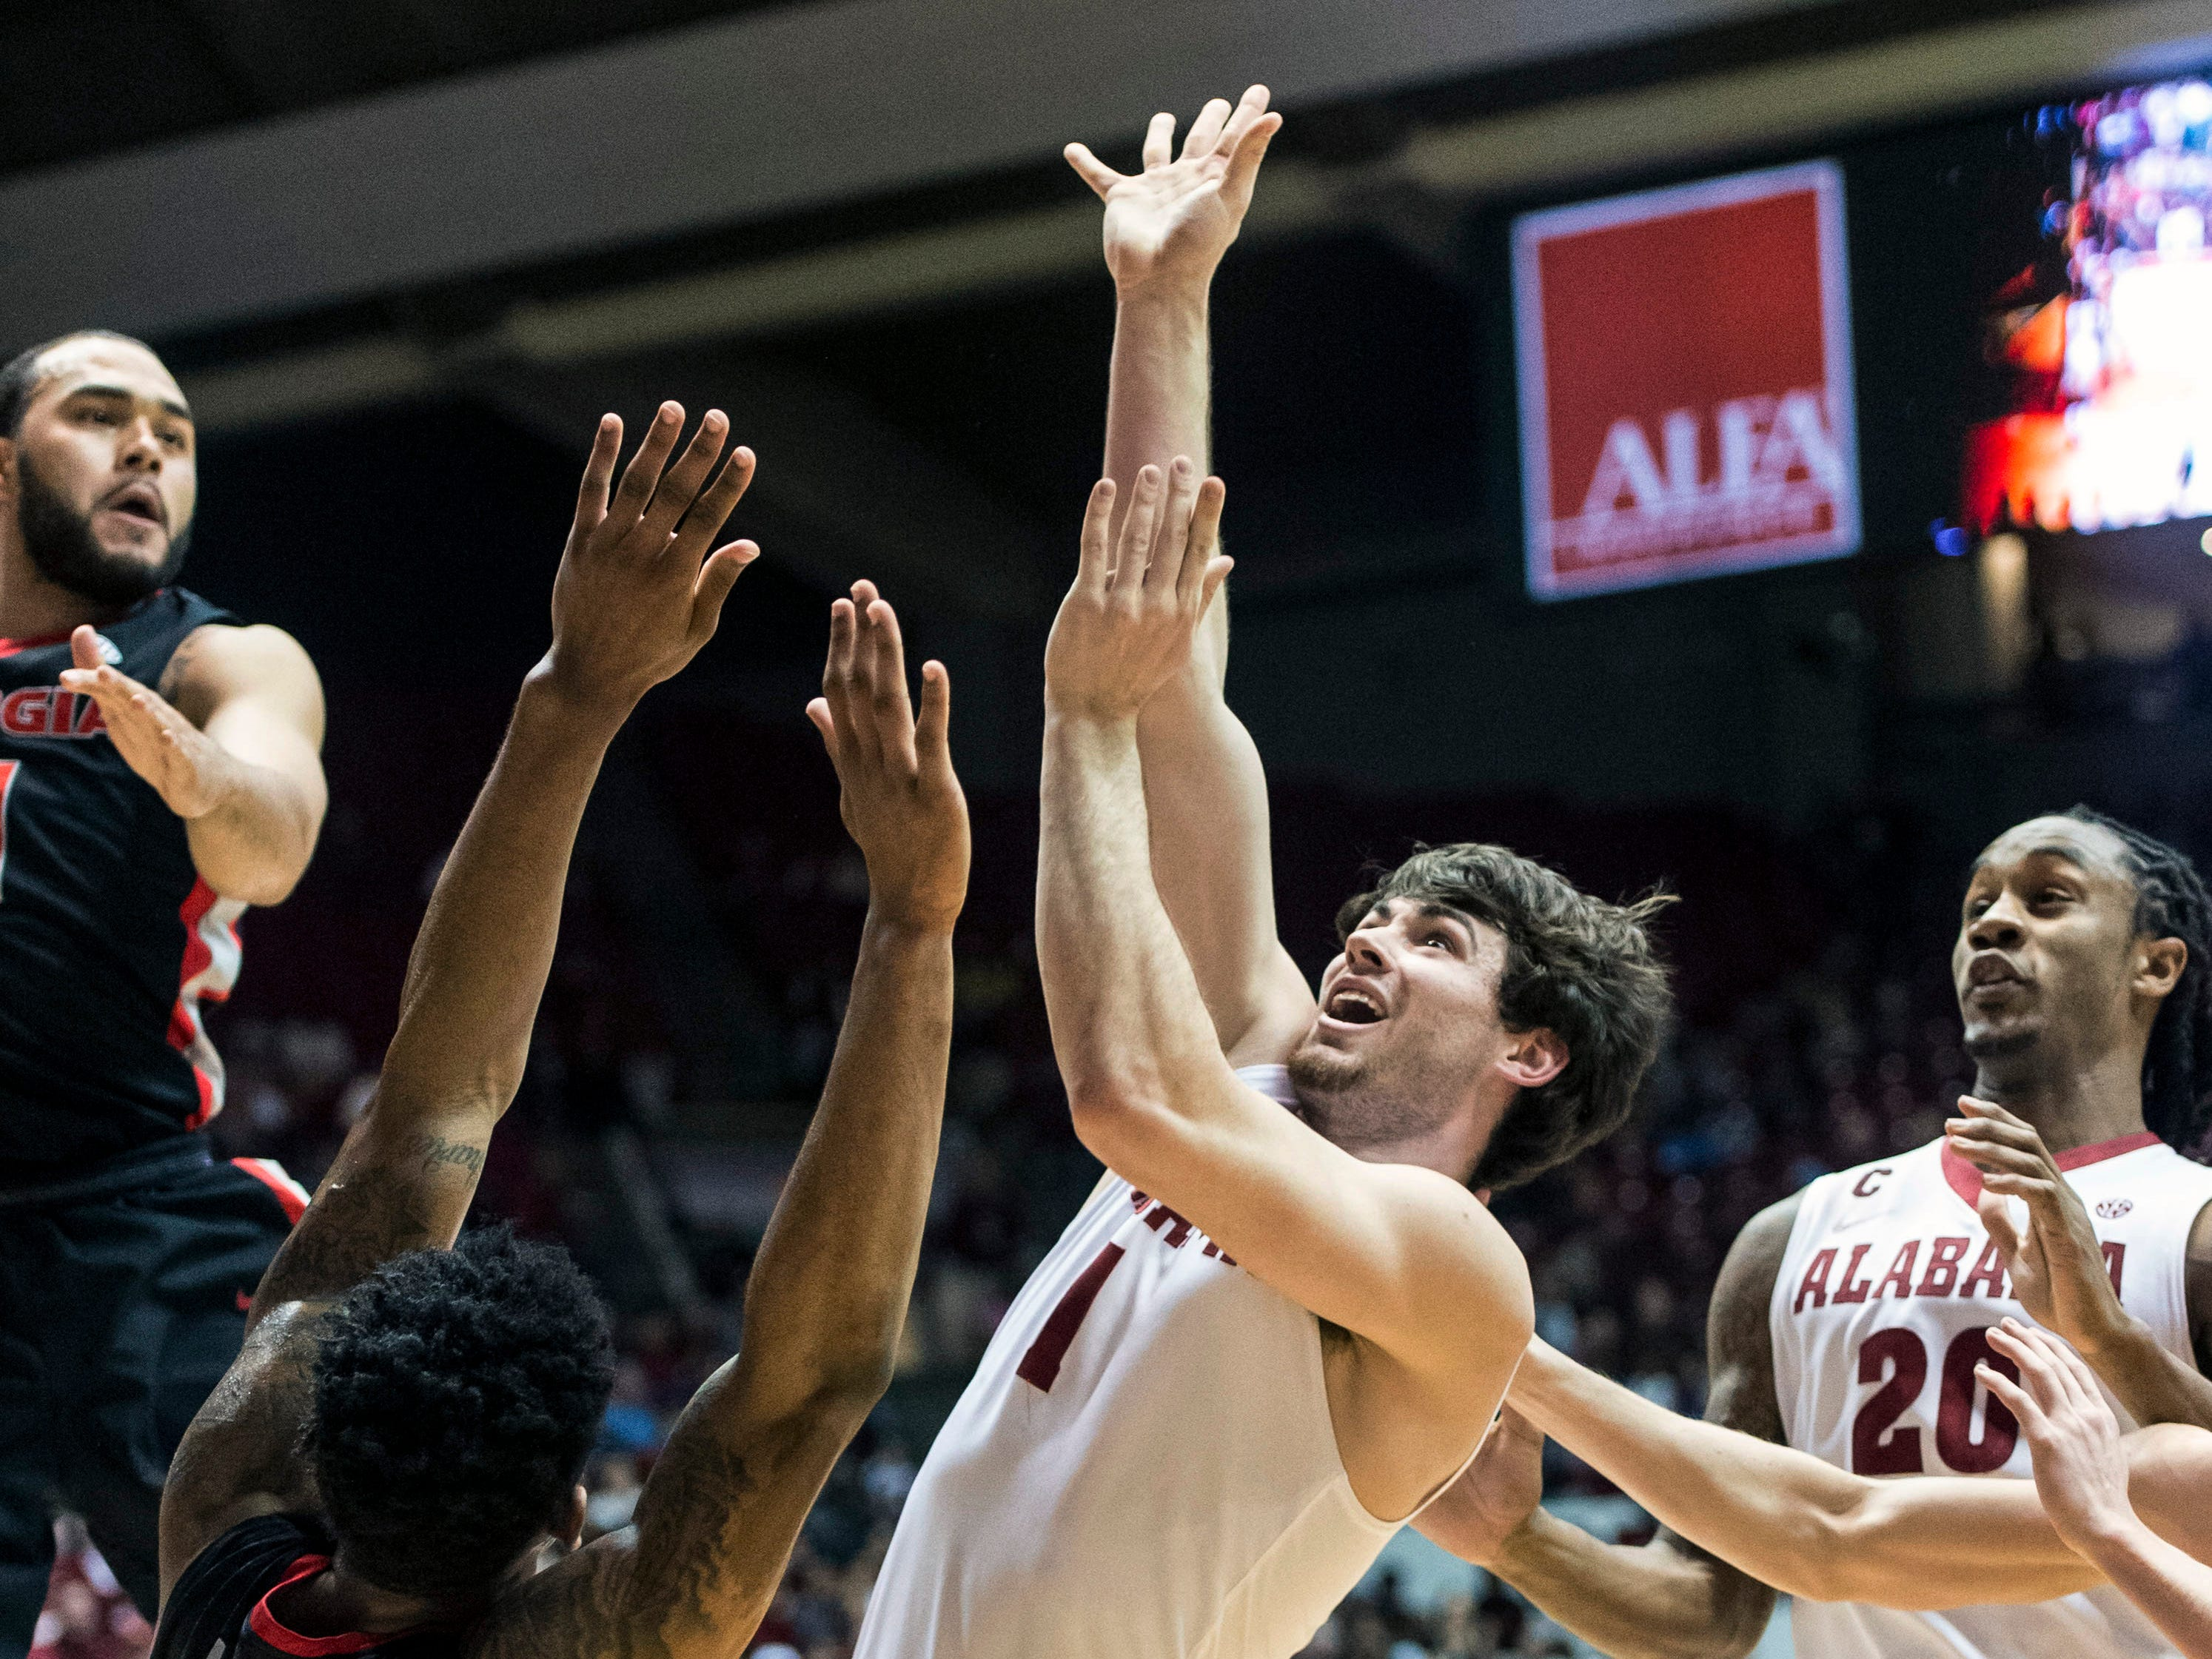 Alabama guard/forward Riley Norris (1) goes inside for two as Georgia guard Charles Mann defends during an NCAA college basketball game, Saturday, Feb. 21, 2015, at Coleman Coliseum in Tuscaloosa, Ala. (AP Photo/AL.com, Vasha Hunt) MAGS OUT